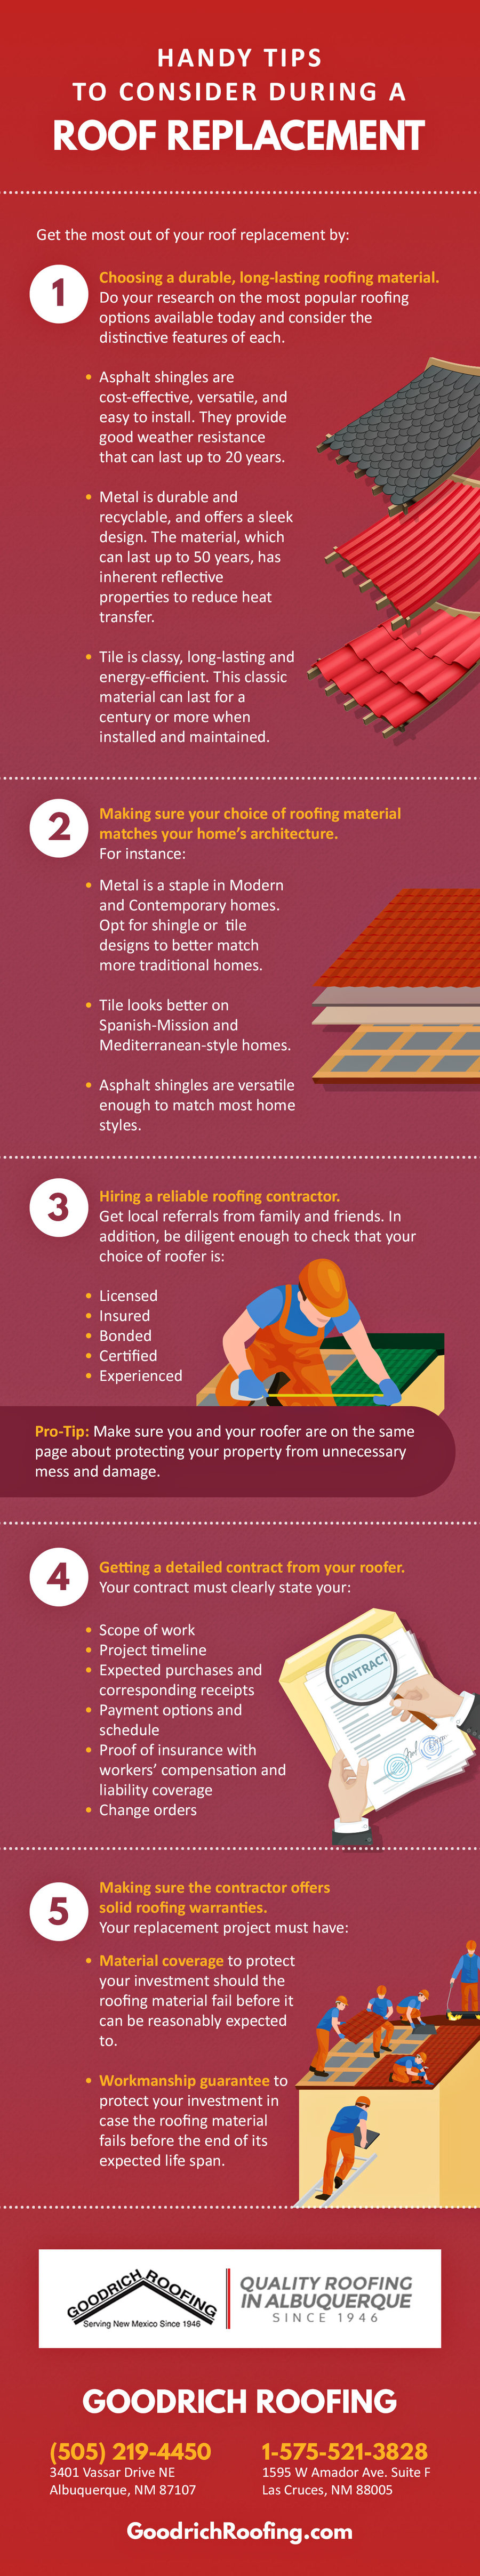 Infographic Handy Tips To Consider During A Roof Replacement